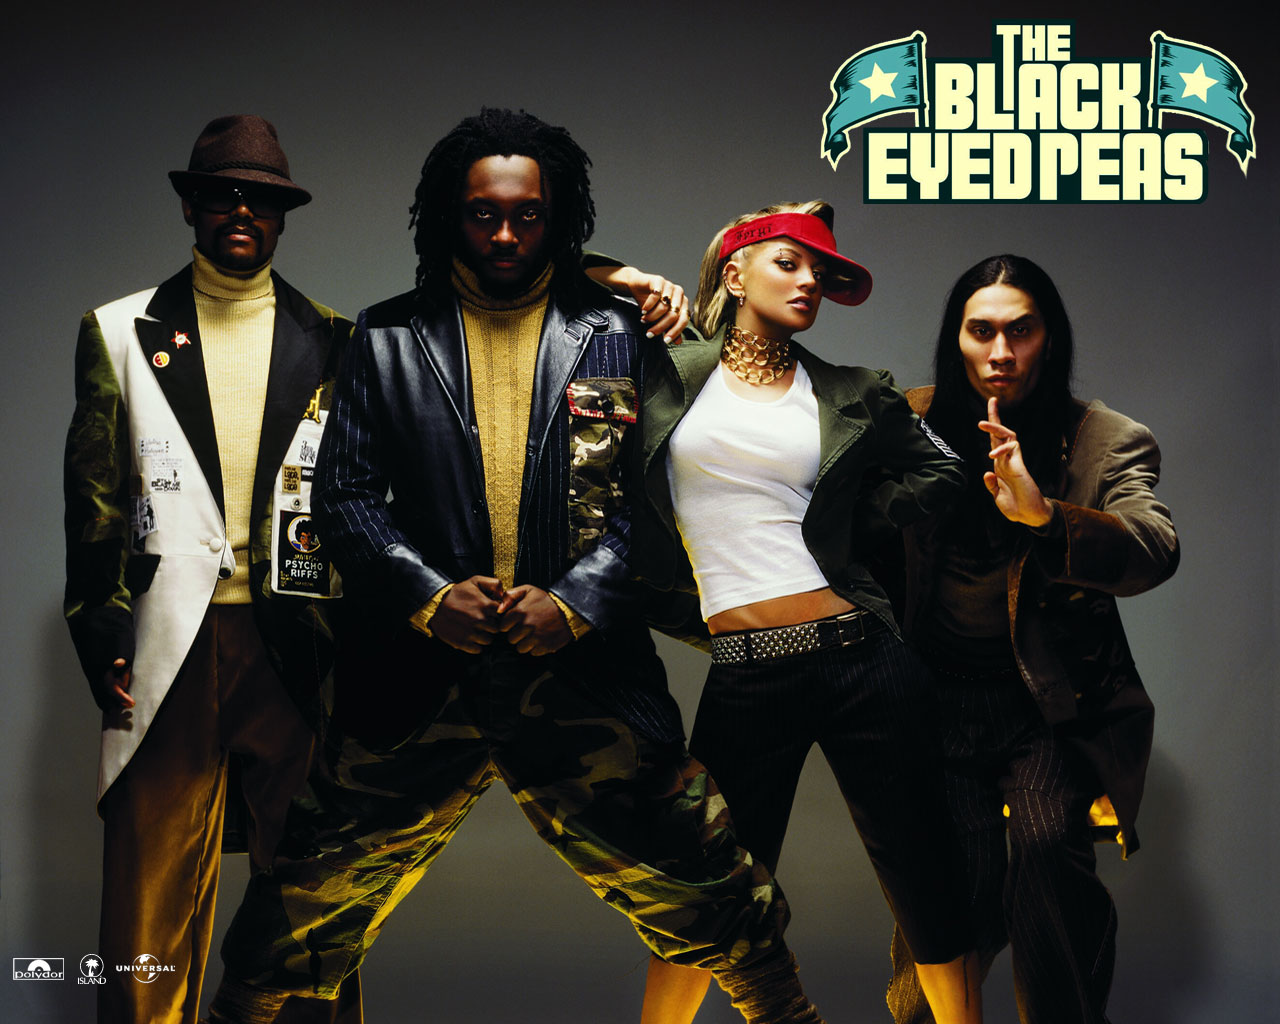 CD E DVD Black Eyed Peas Ao Vivo 1